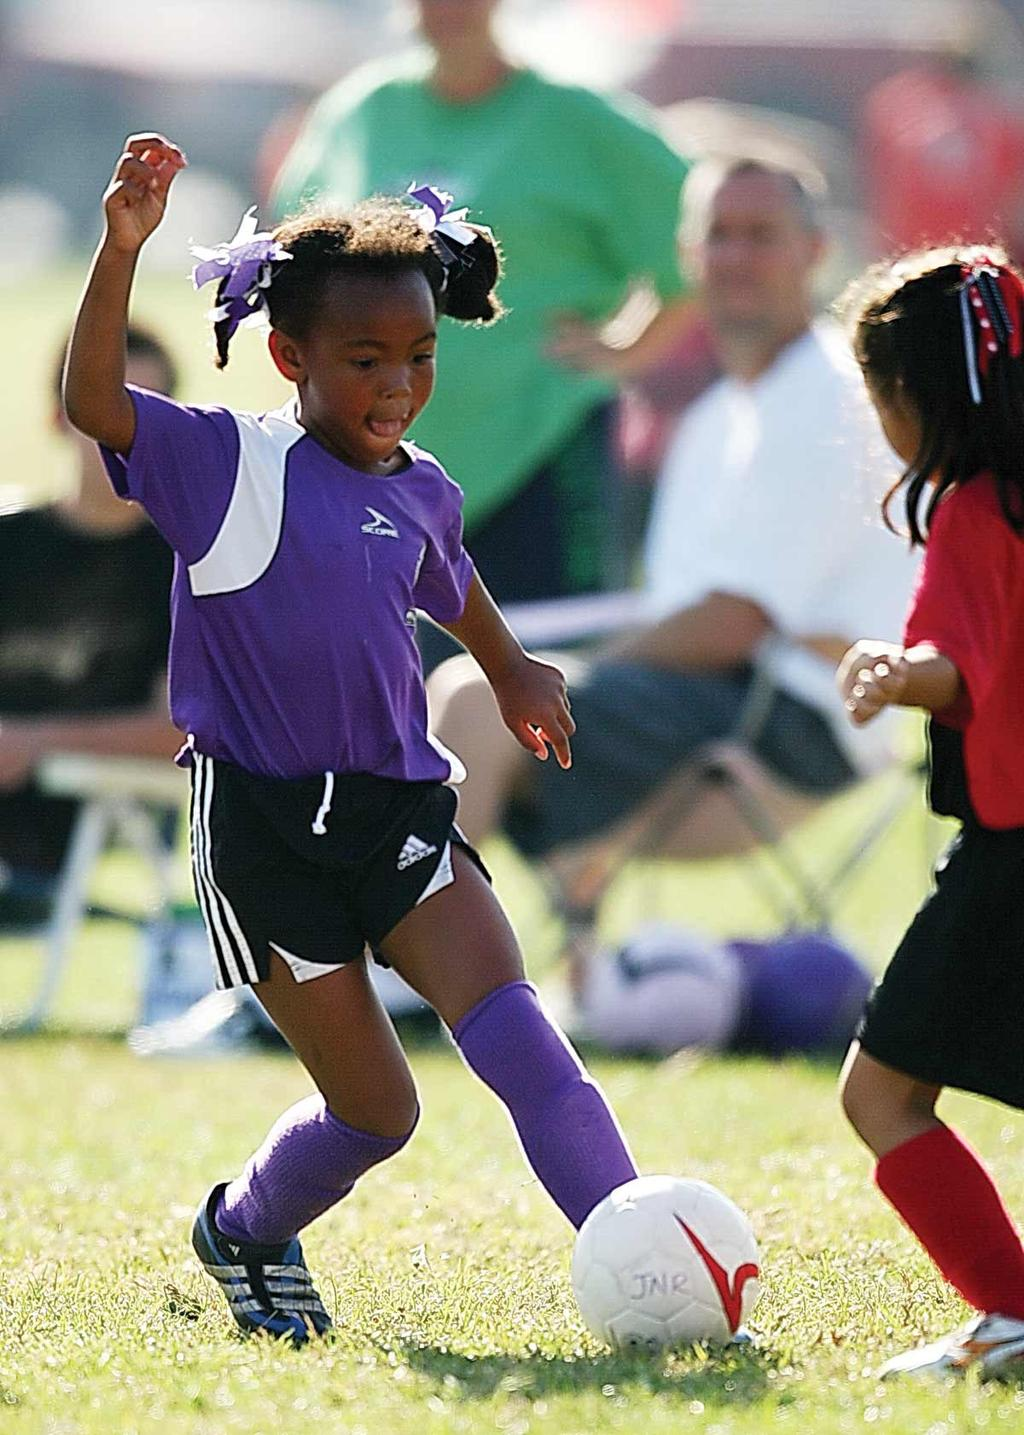 AYSO Philosophies: Open Registration Our program is open to all children who want to register and play soccer.